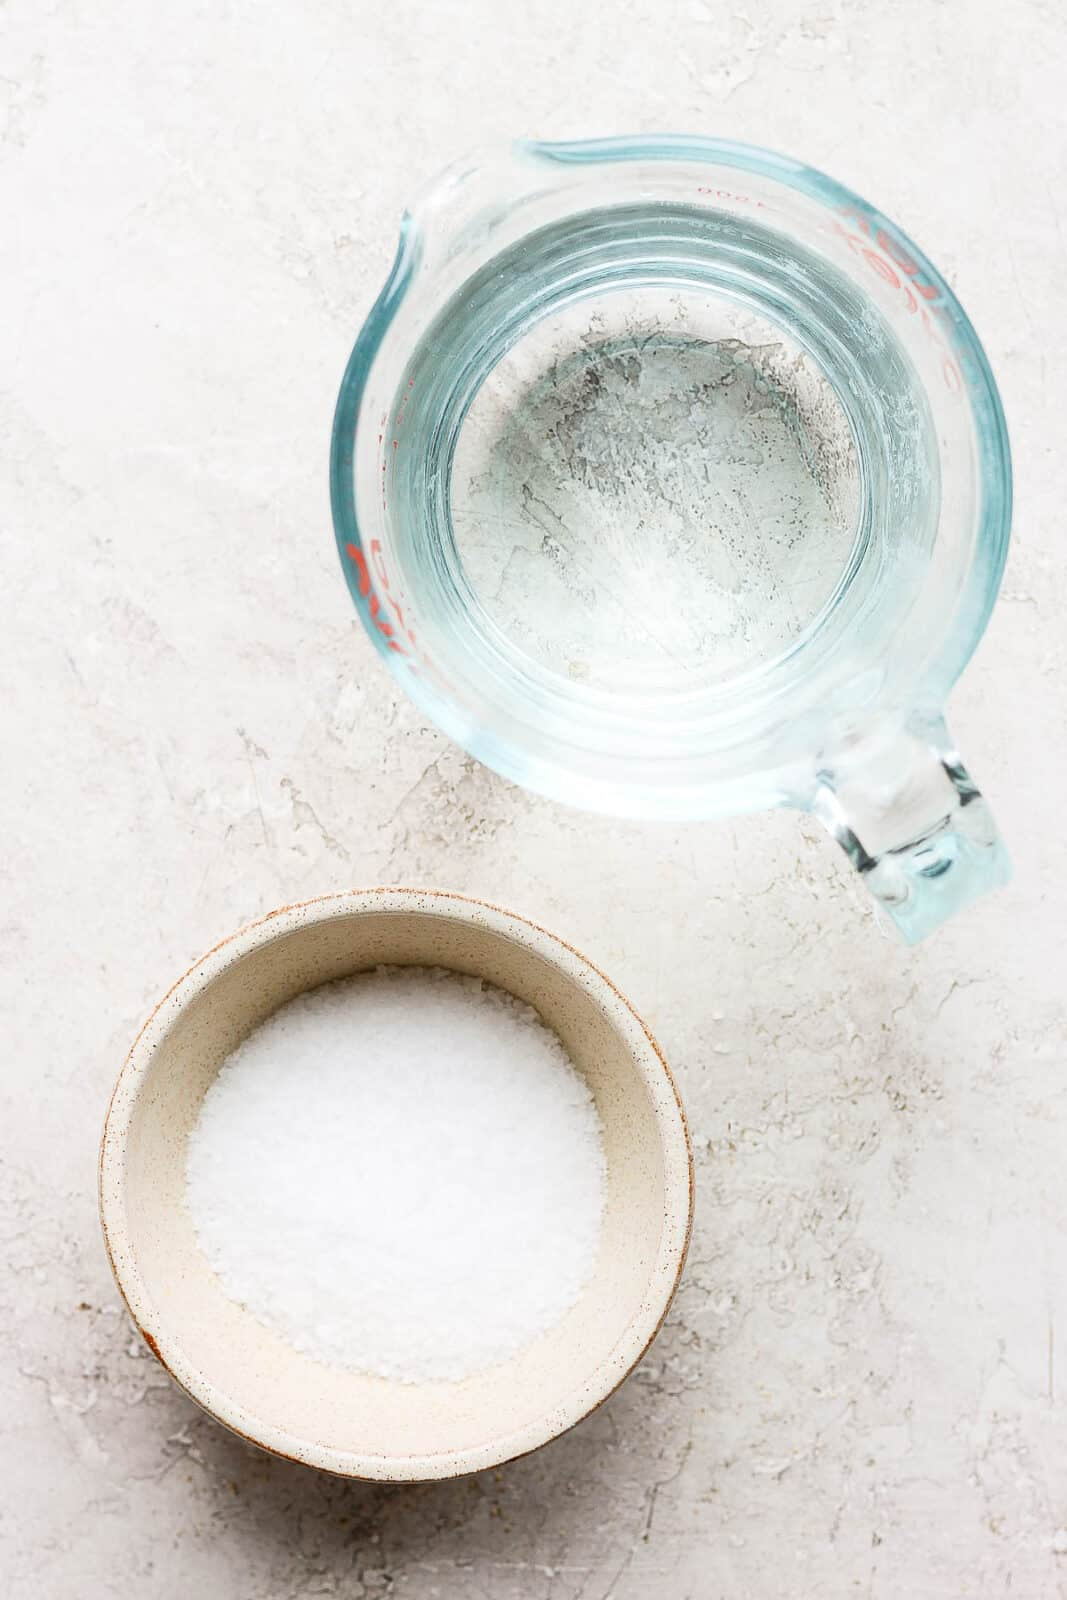 A bowl of kosher salt and measuring cup of water.